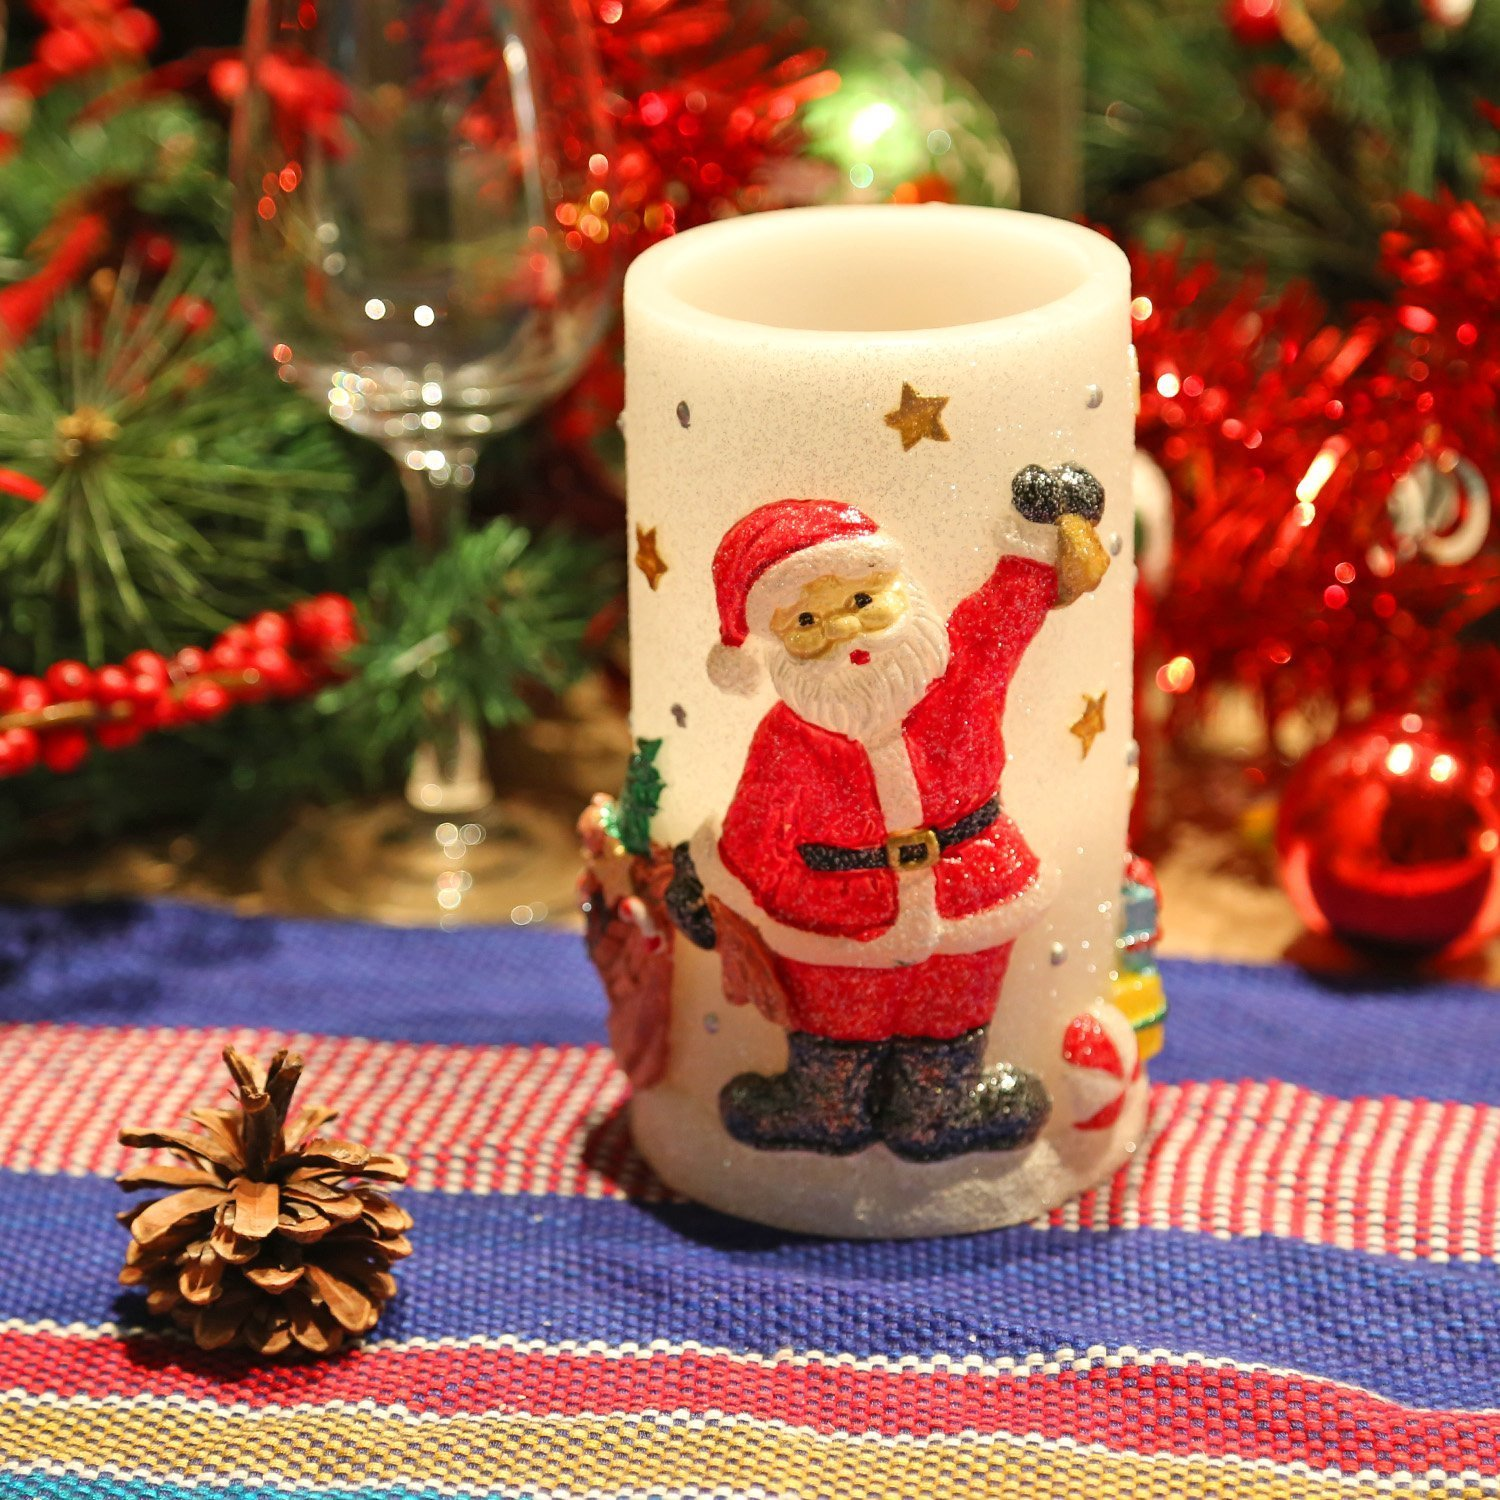 Snowman Flameless LED Candle Lights with Timer, 3X6 inches for Christmas Home Decor DFL AM14X007